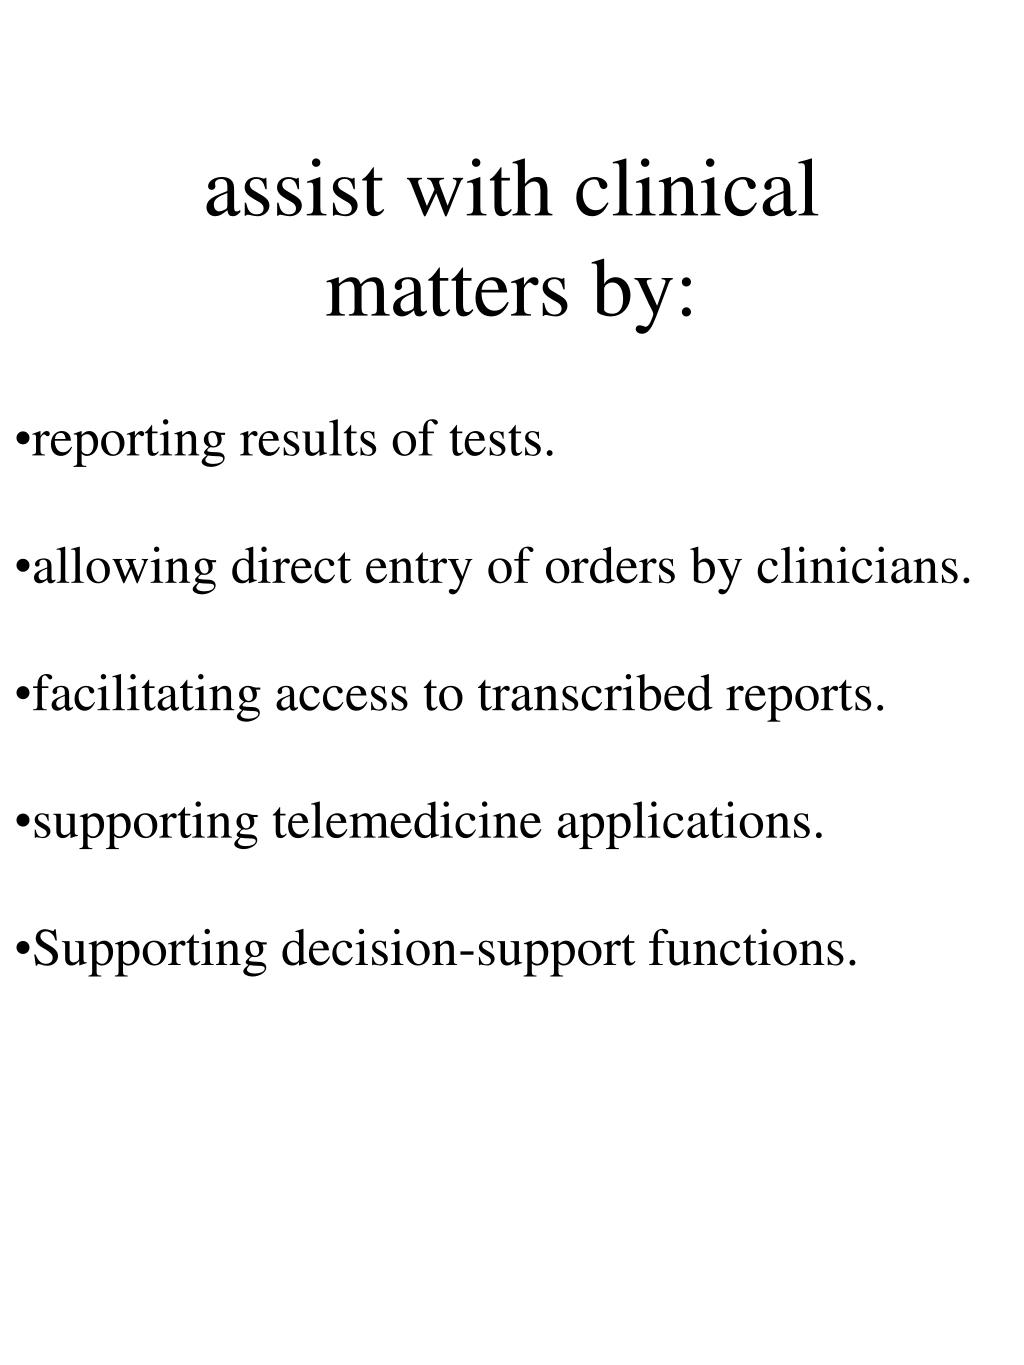 assist with clinical matters by: